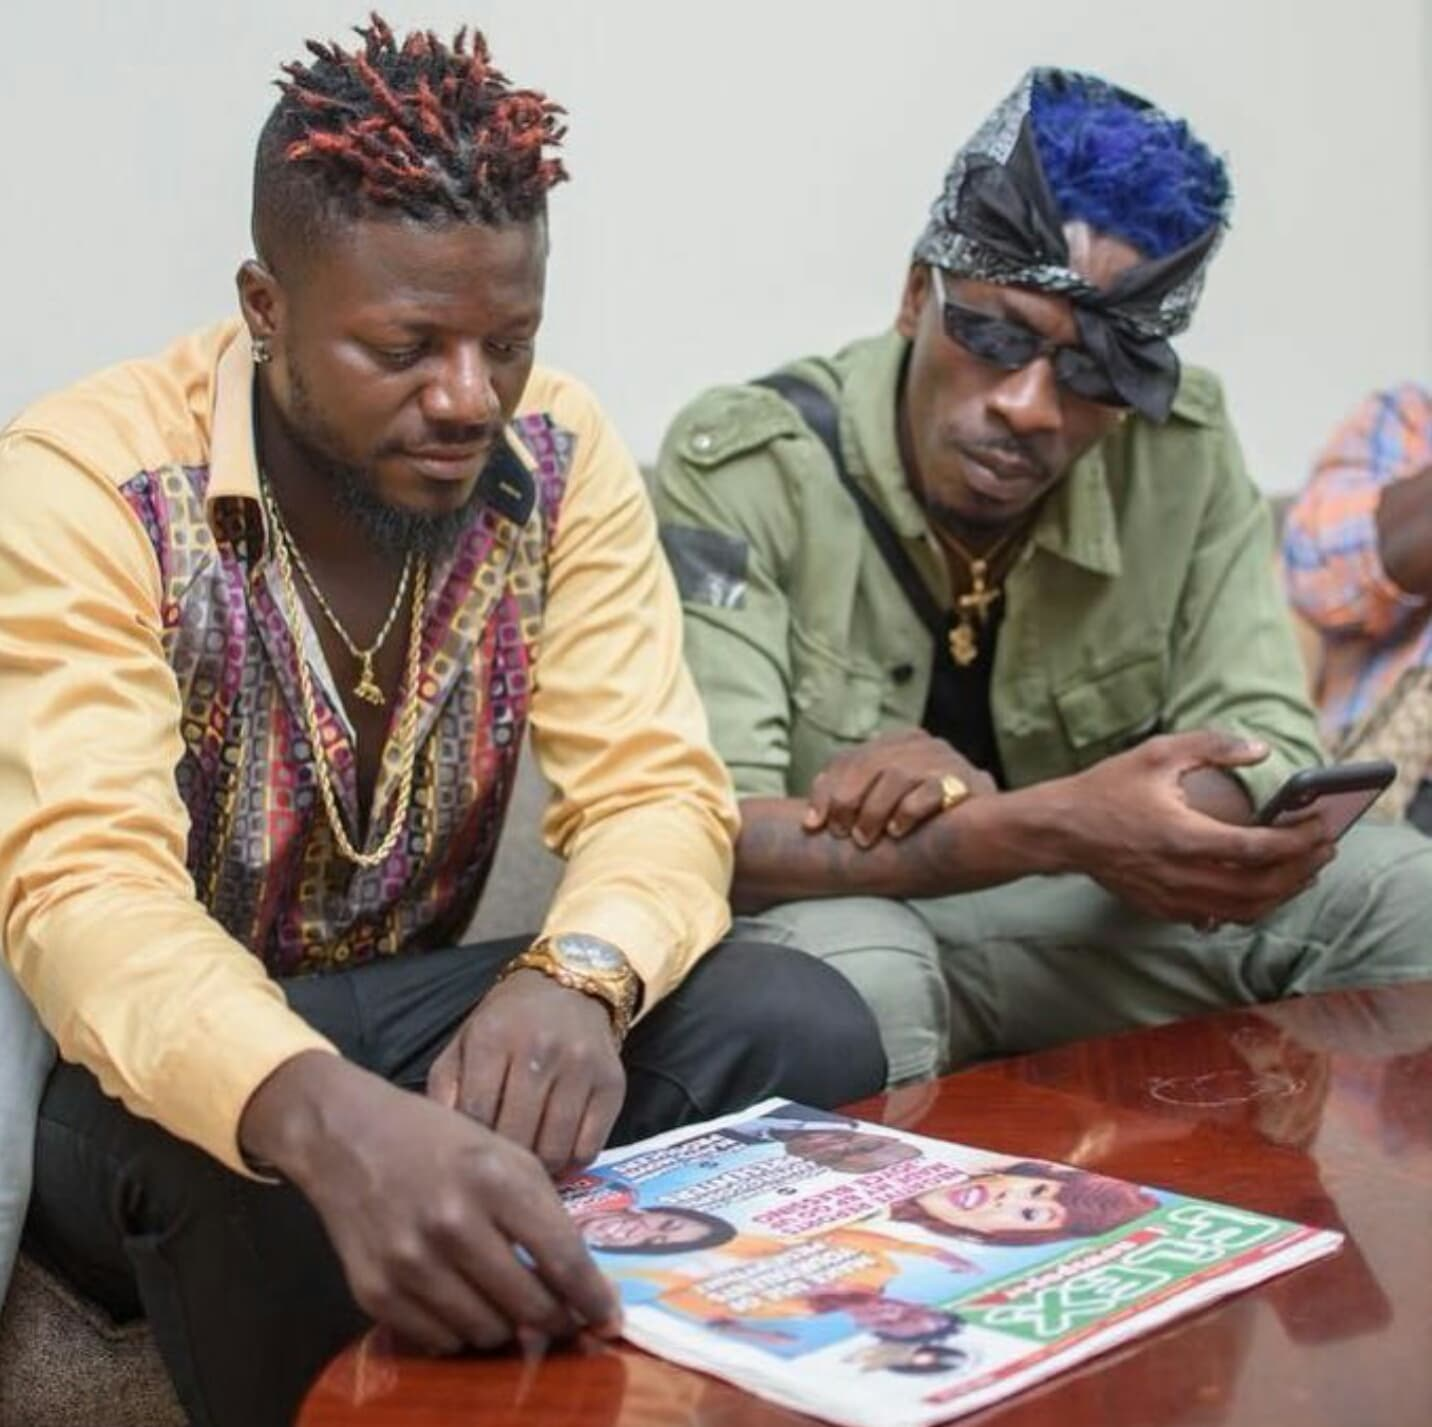 Pope Skinny disagrees with Shatta Wale's apology